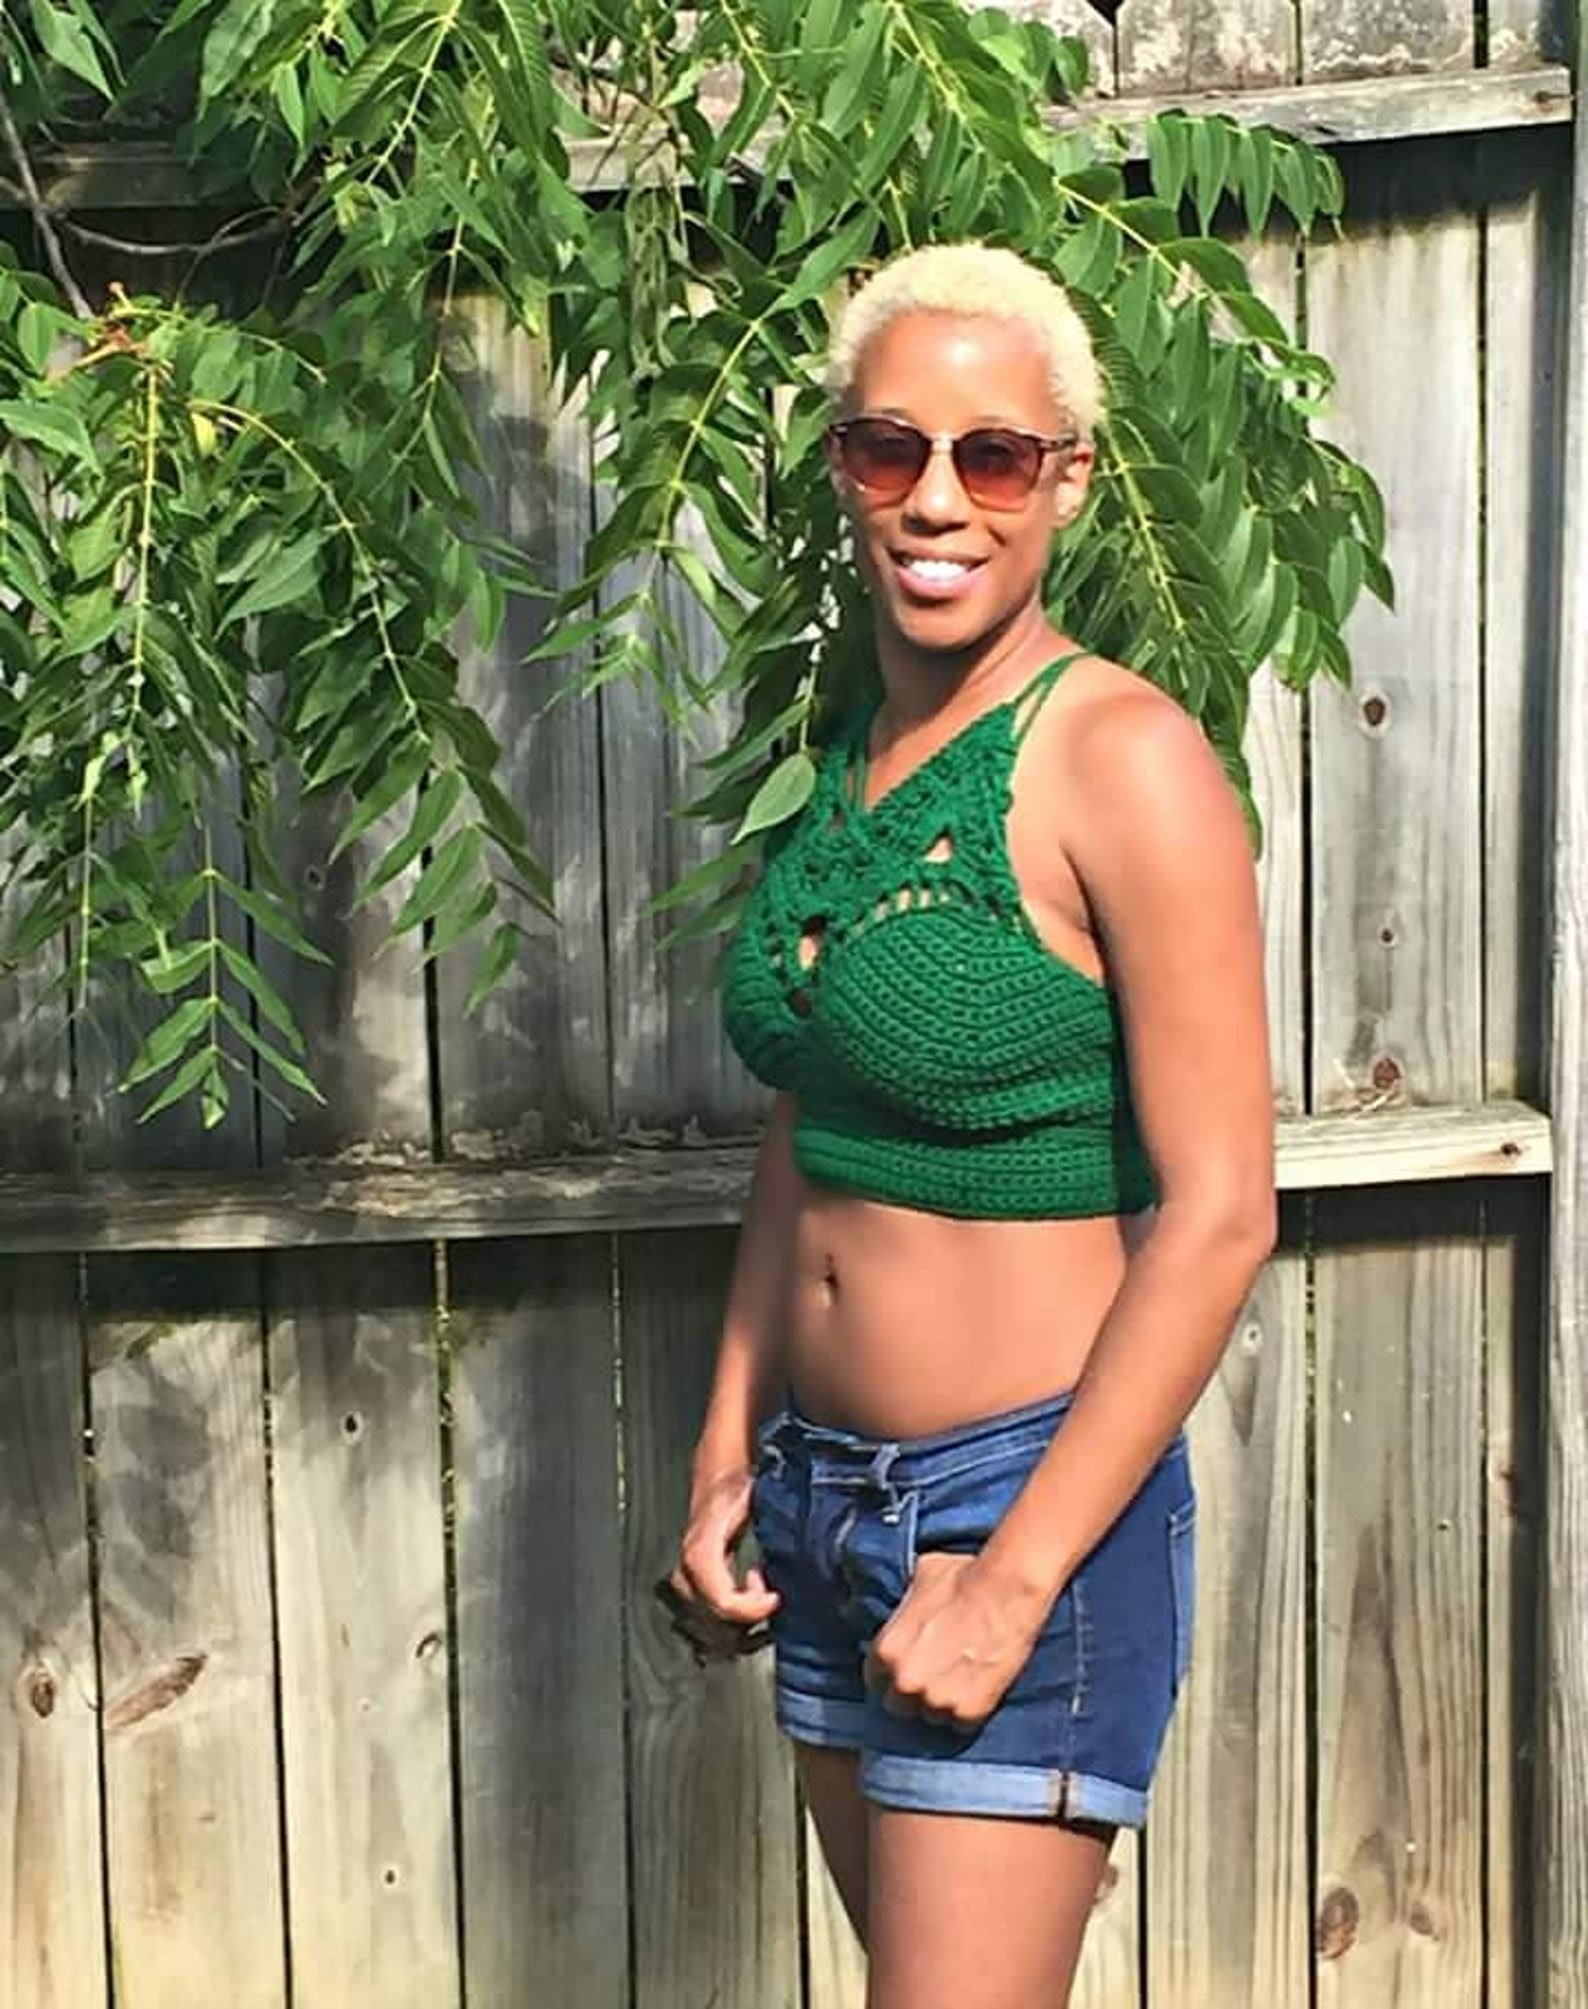 A person wearing a green crop top with a crochet pattern